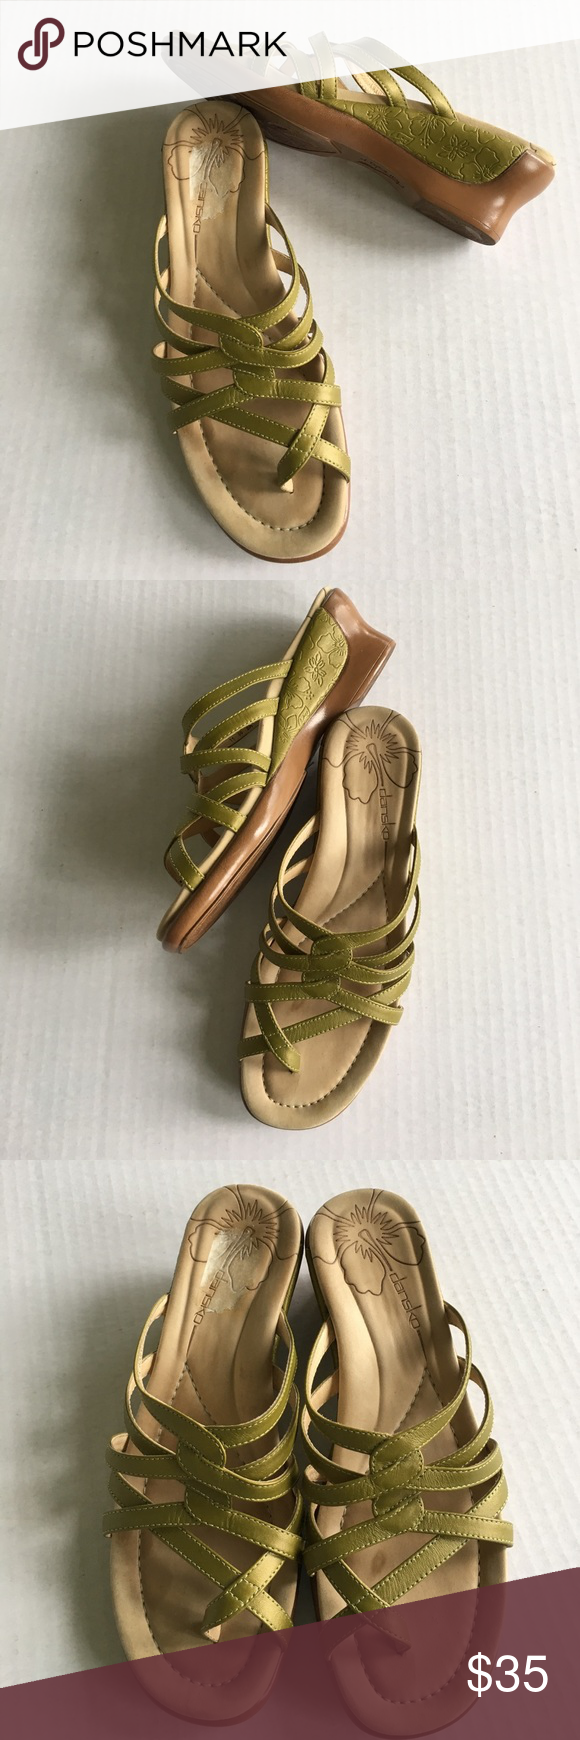 Dansko wedge toe sandals size eu37 is 6.5 / 7 Avocado green leather straps DANSKO wedge sandals in excellent barely worn (once or twice briefly) -- Made in Portugal sized EU 7 fits USA 6.5 /7 Dansko Shoes Sandals